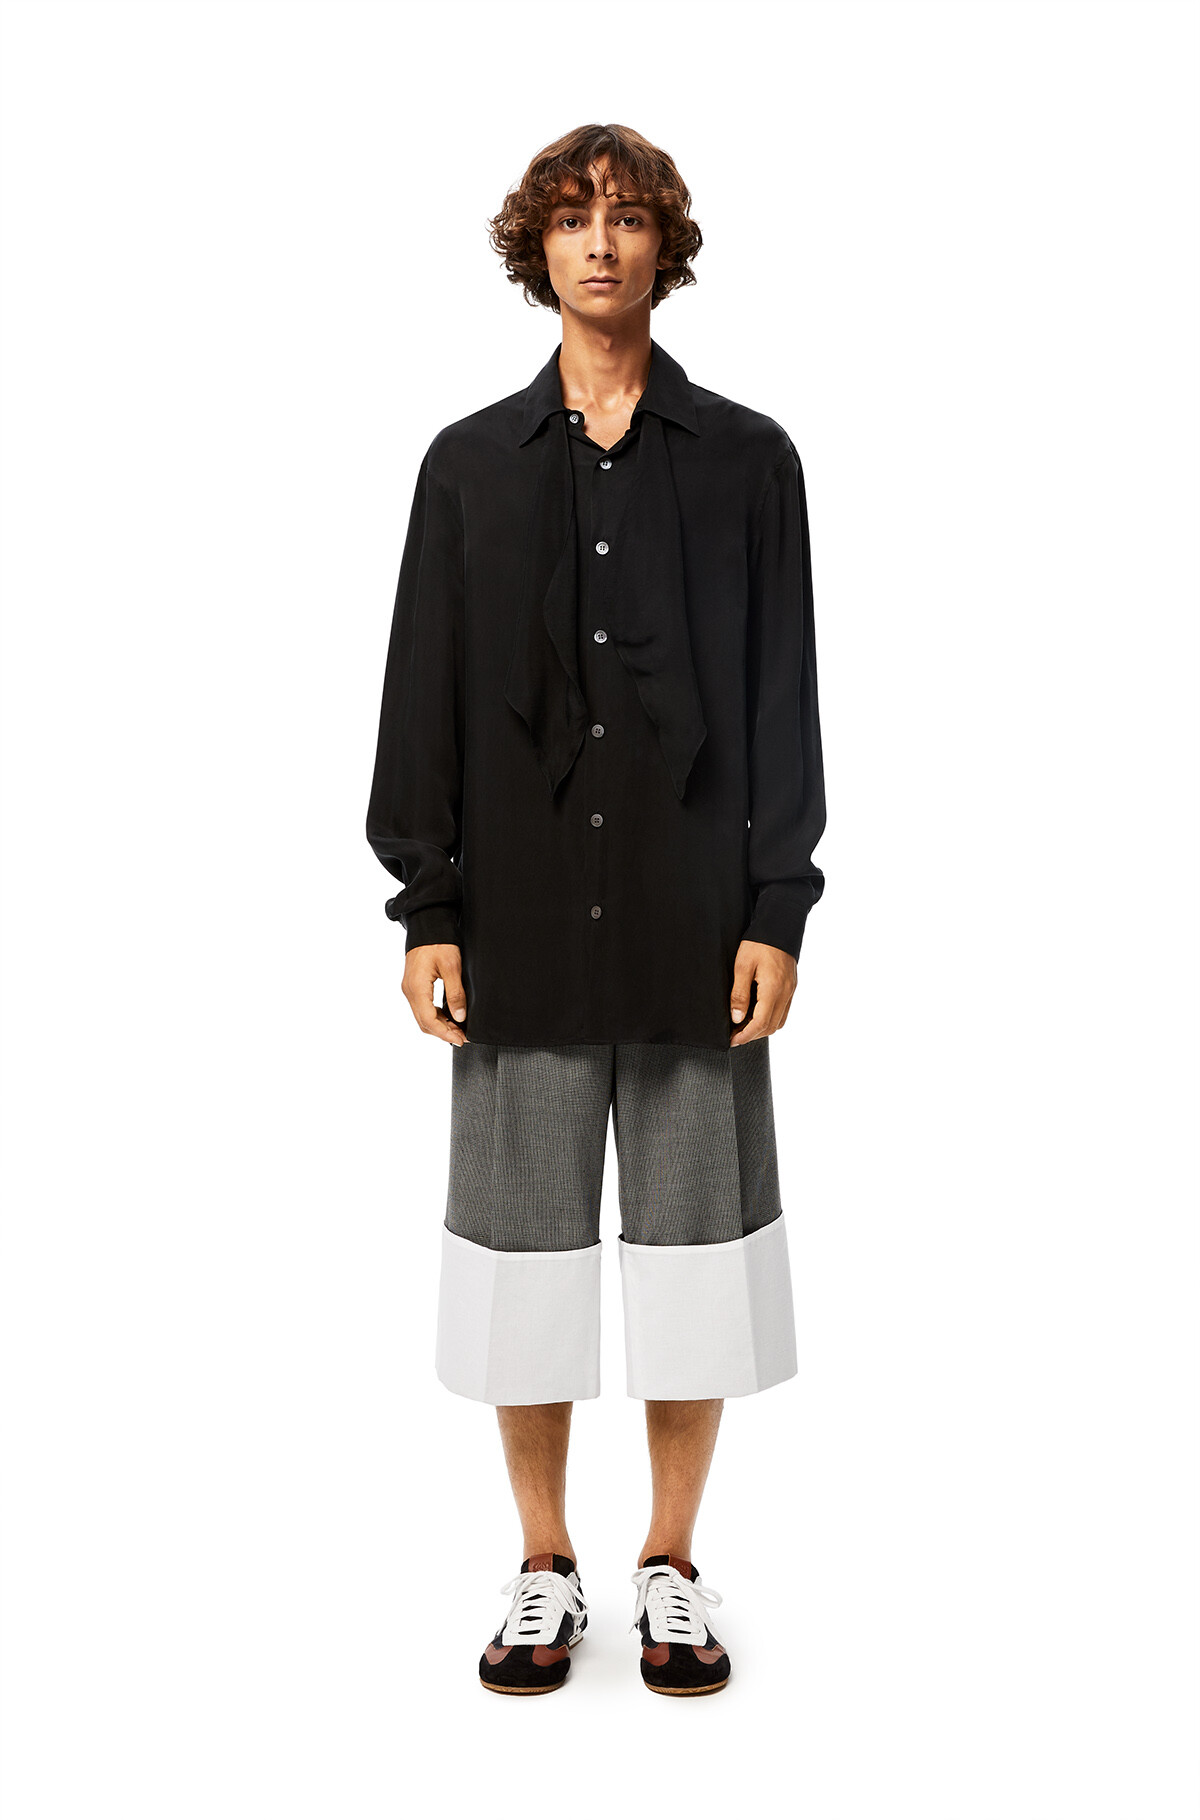 LOEWE Turn Up Pleated Short Trousers Black/Grey/White front